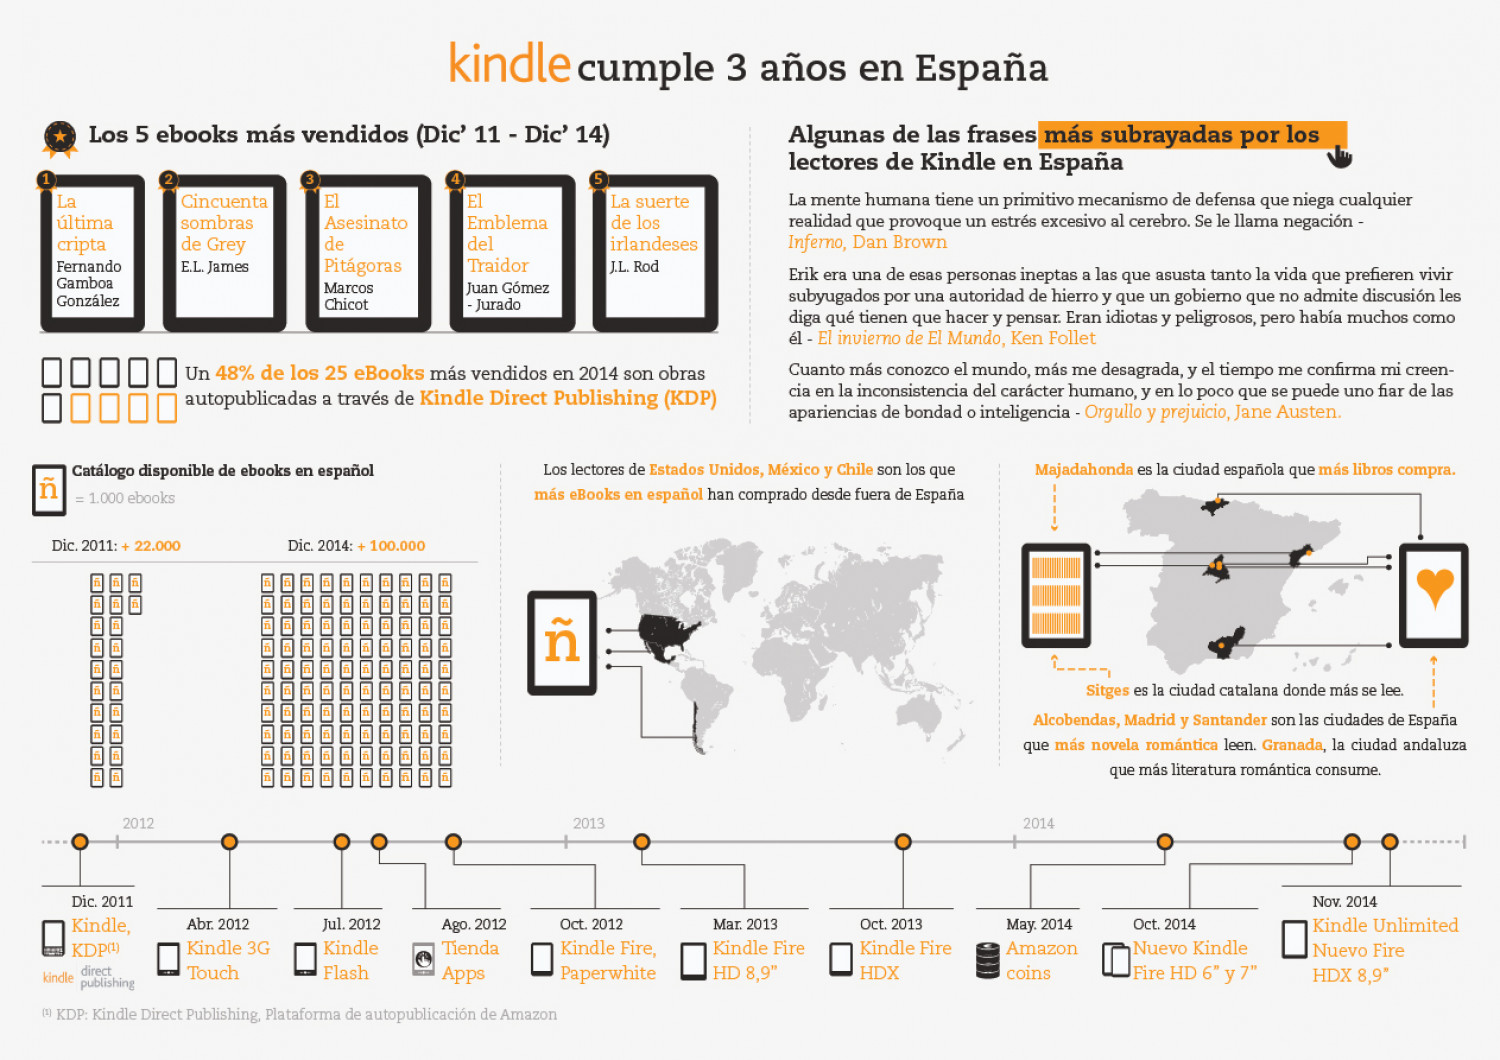 Kindle turns 3 in Spain Infographic